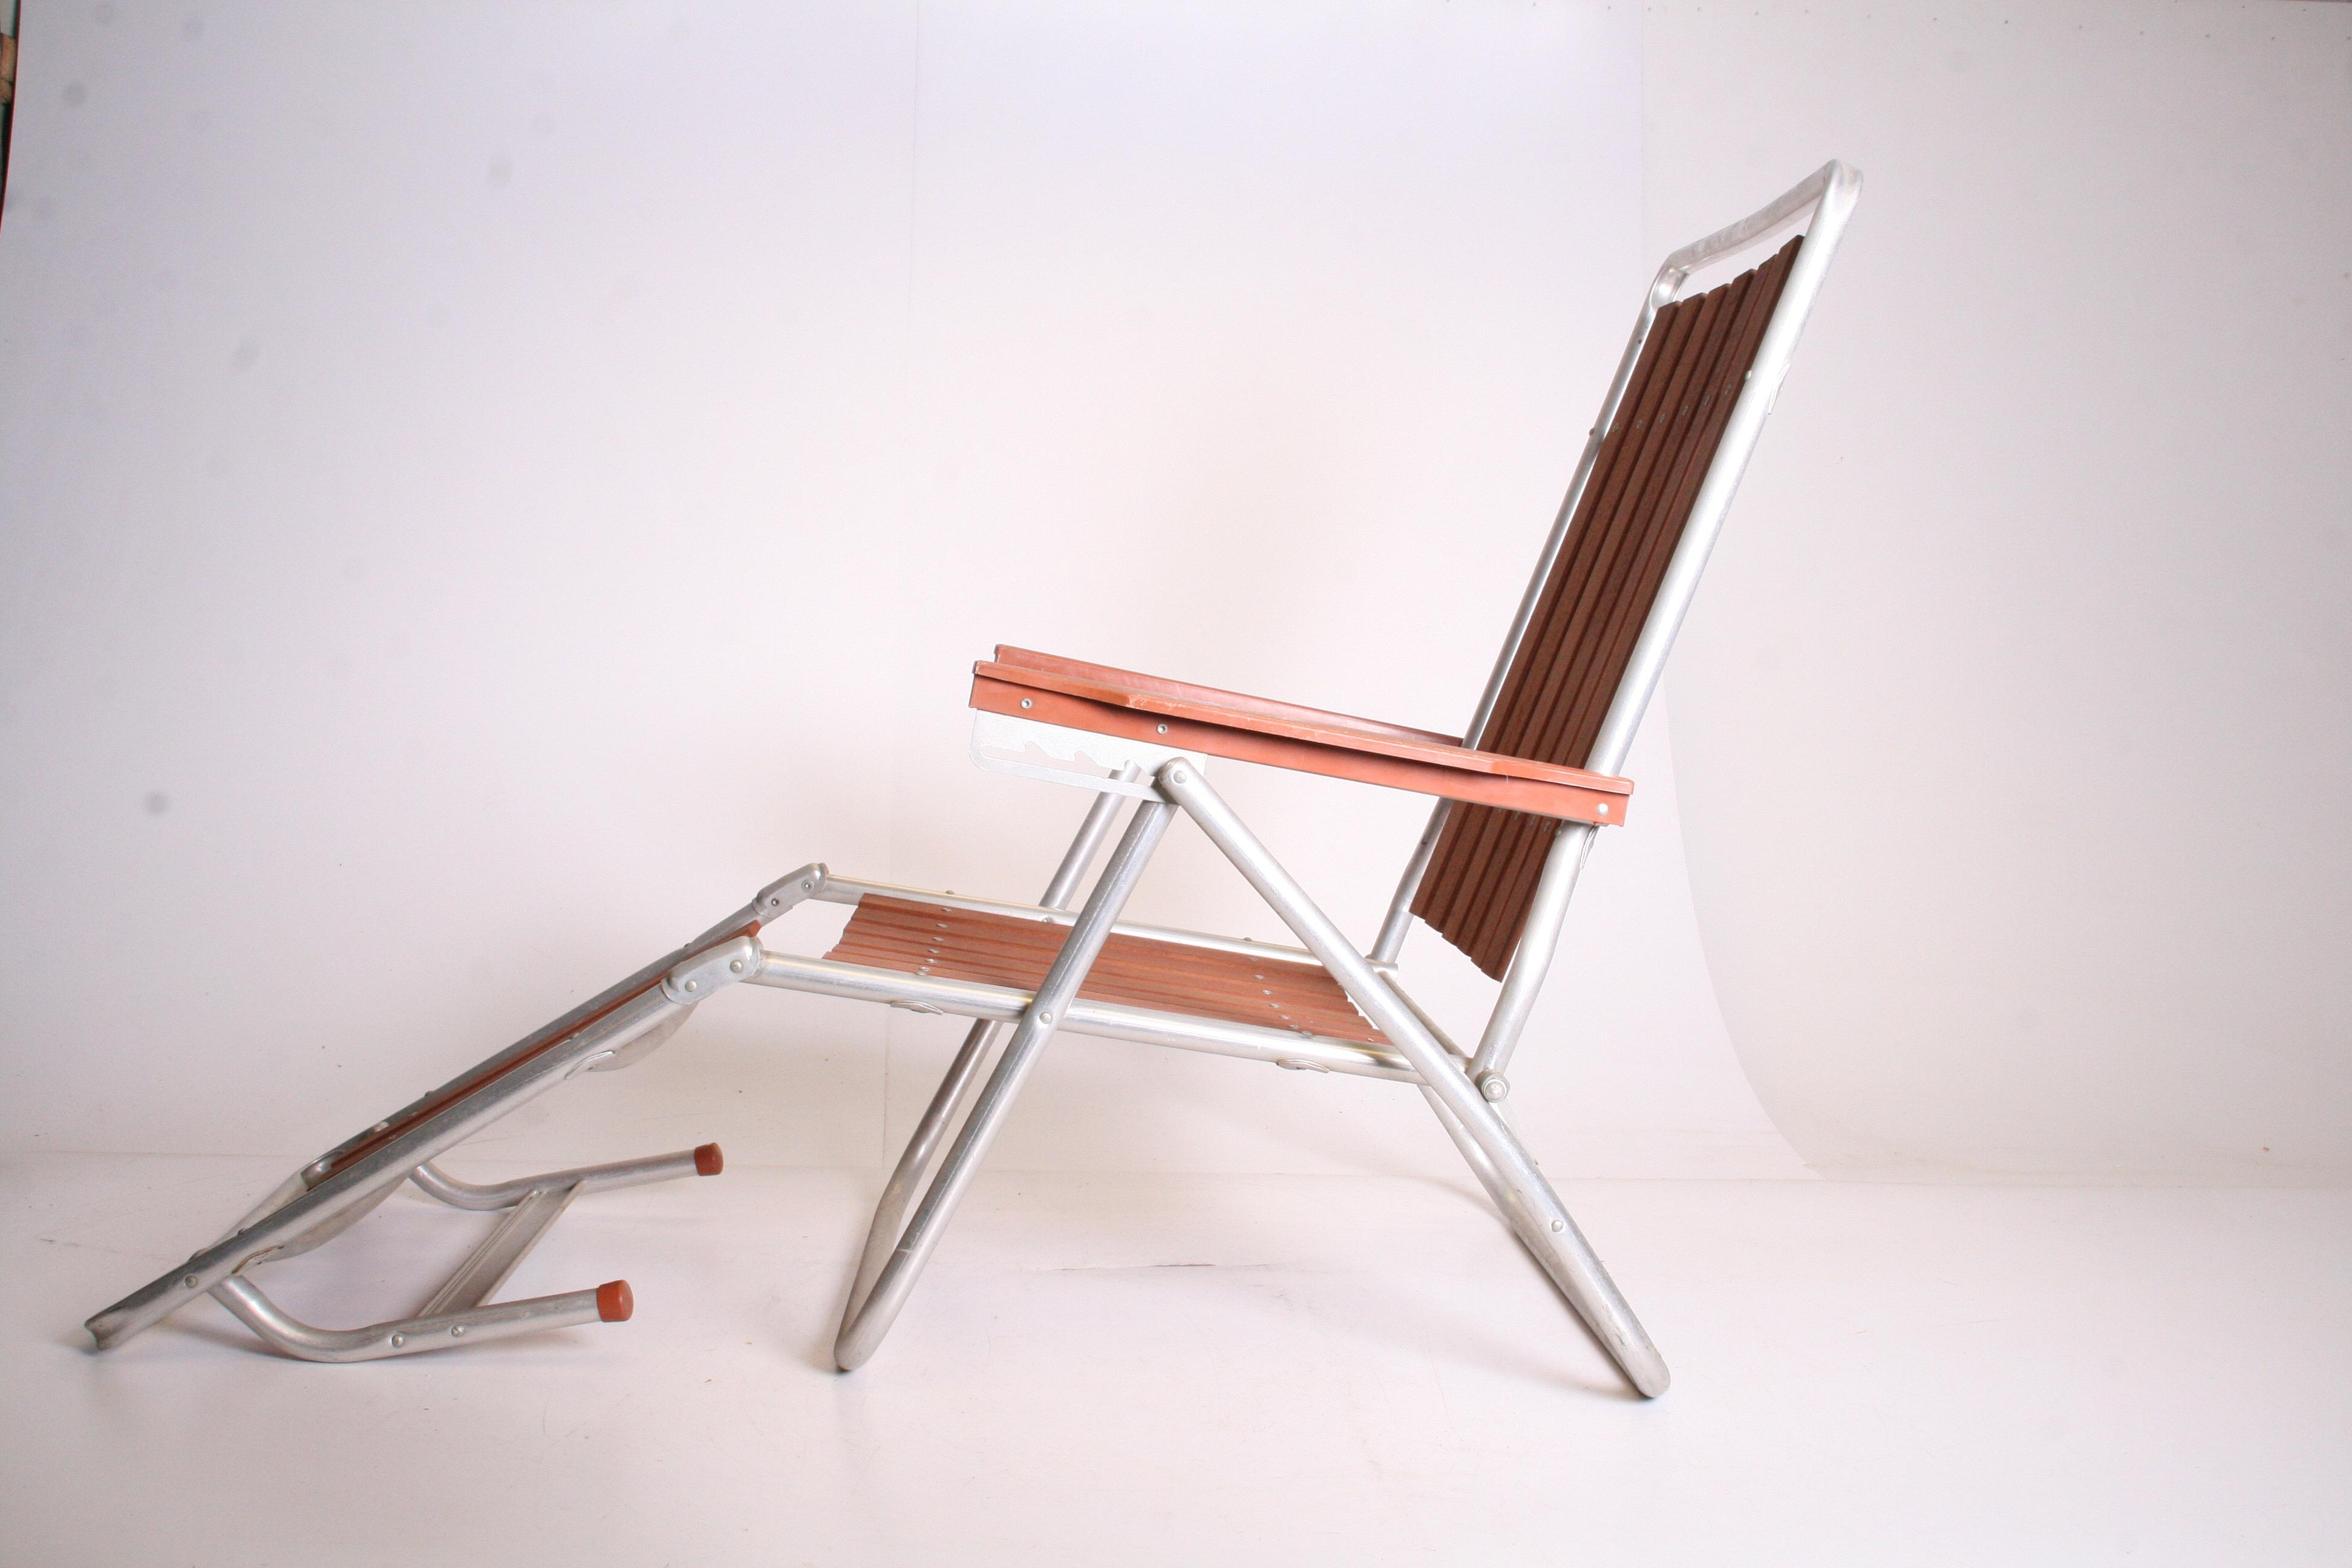 Mid Century Redwood Aluminum Folding Chaise Lounge Chair - Image 5 of 11  sc 1 st  Chairish : aluminum folding chaise lounge chairs - Sectionals, Sofas & Couches